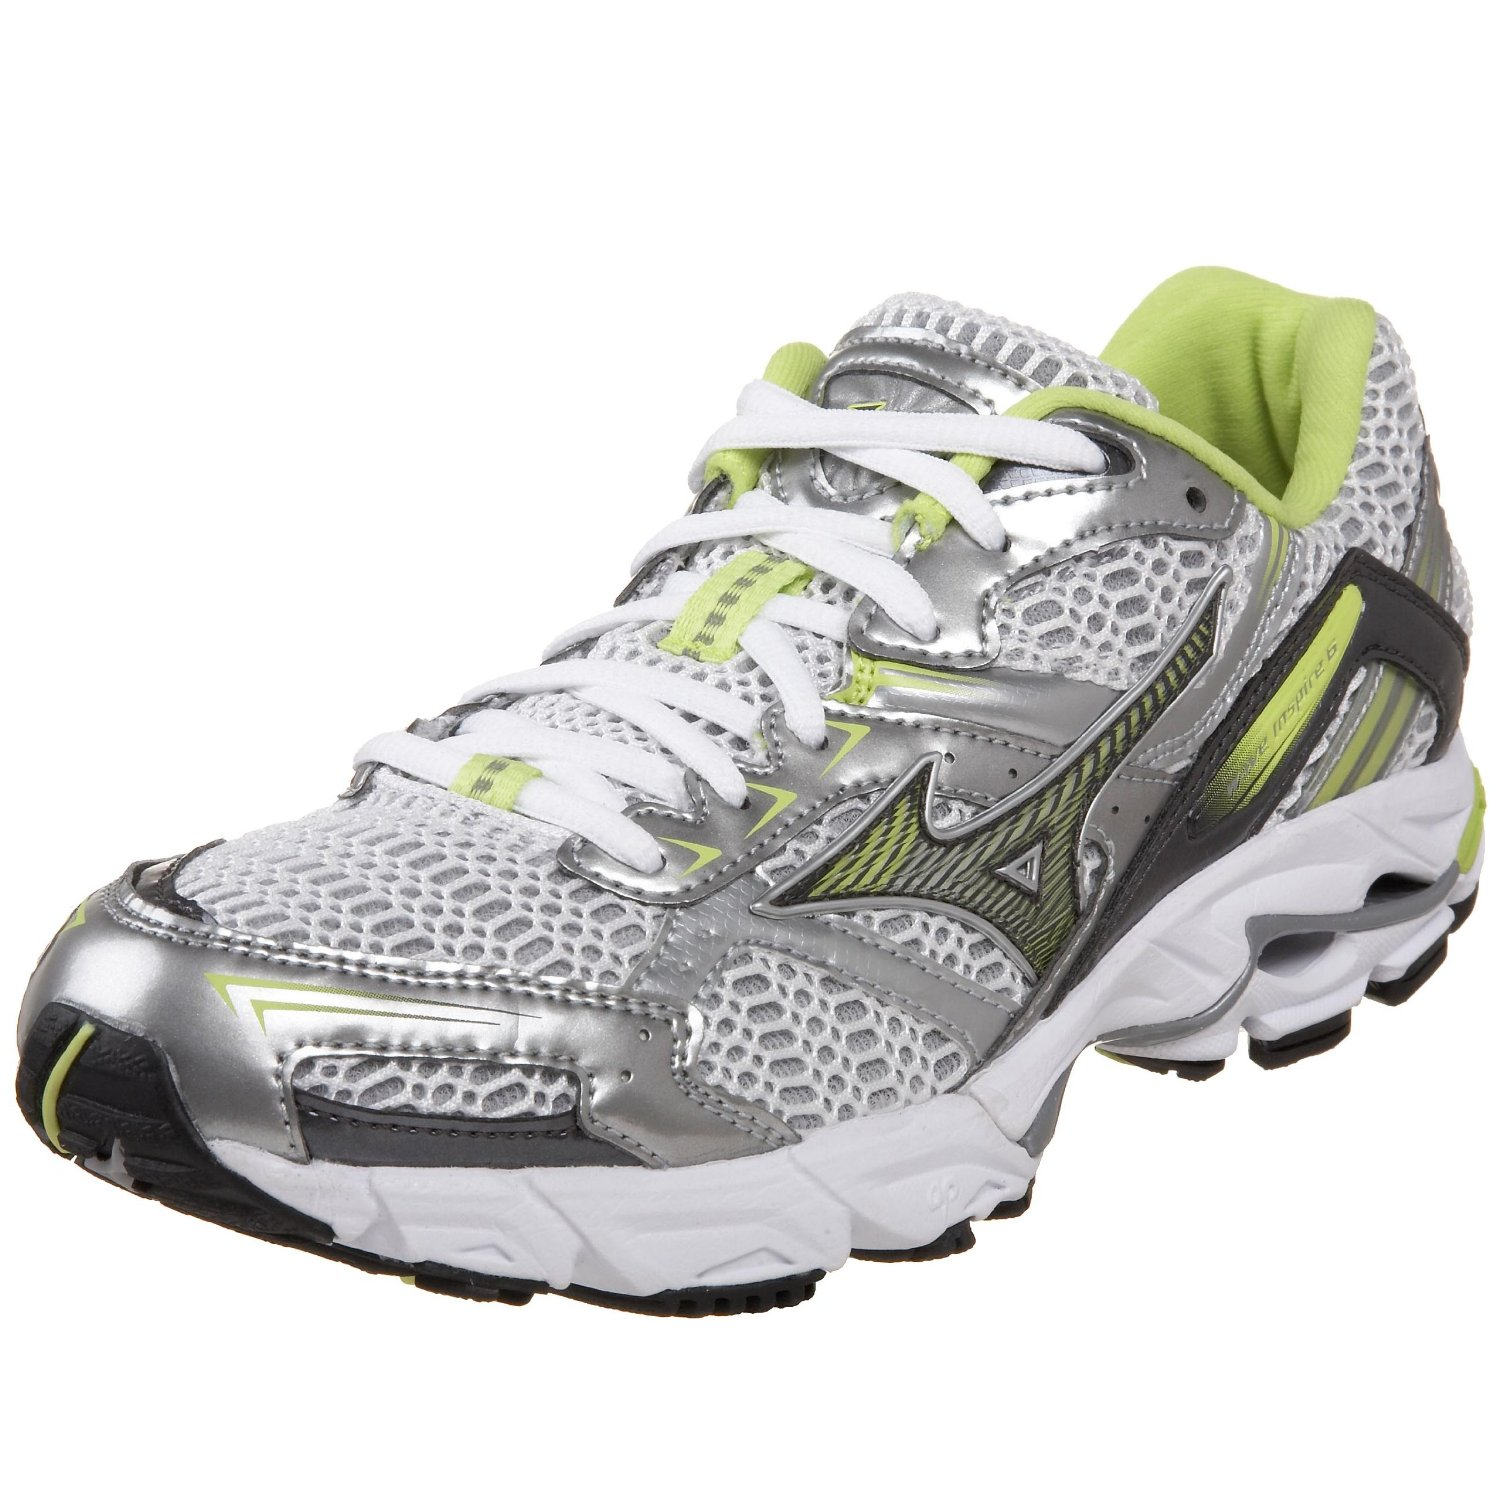 Mizuno Trail Running Shoes: Where to Get Mizuno Trail